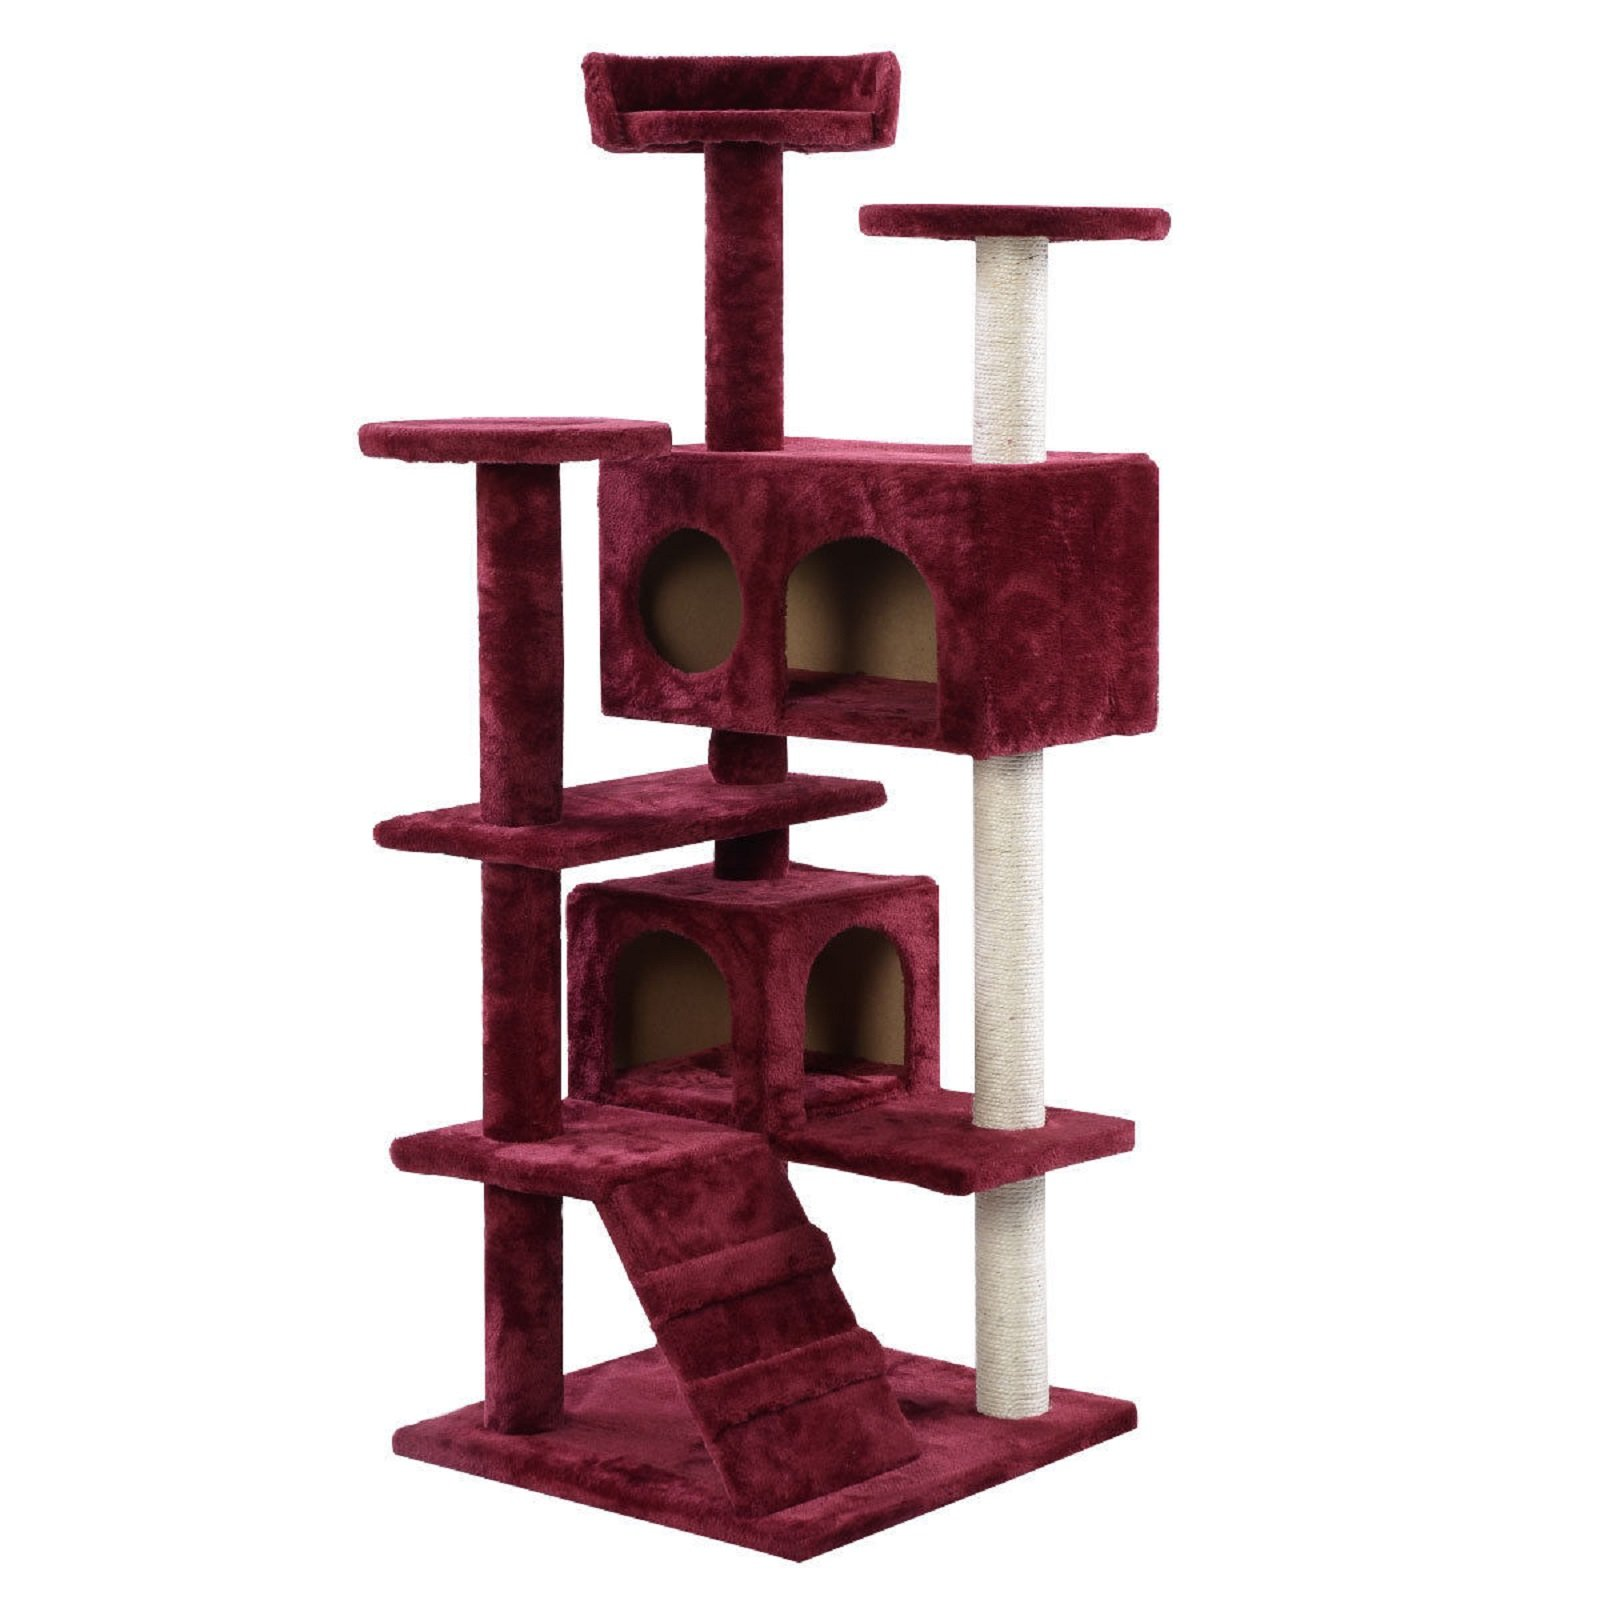 NEW! New Cat Tree Tower Condo Furniture Scratch Post Kitty Pet House Play Wine